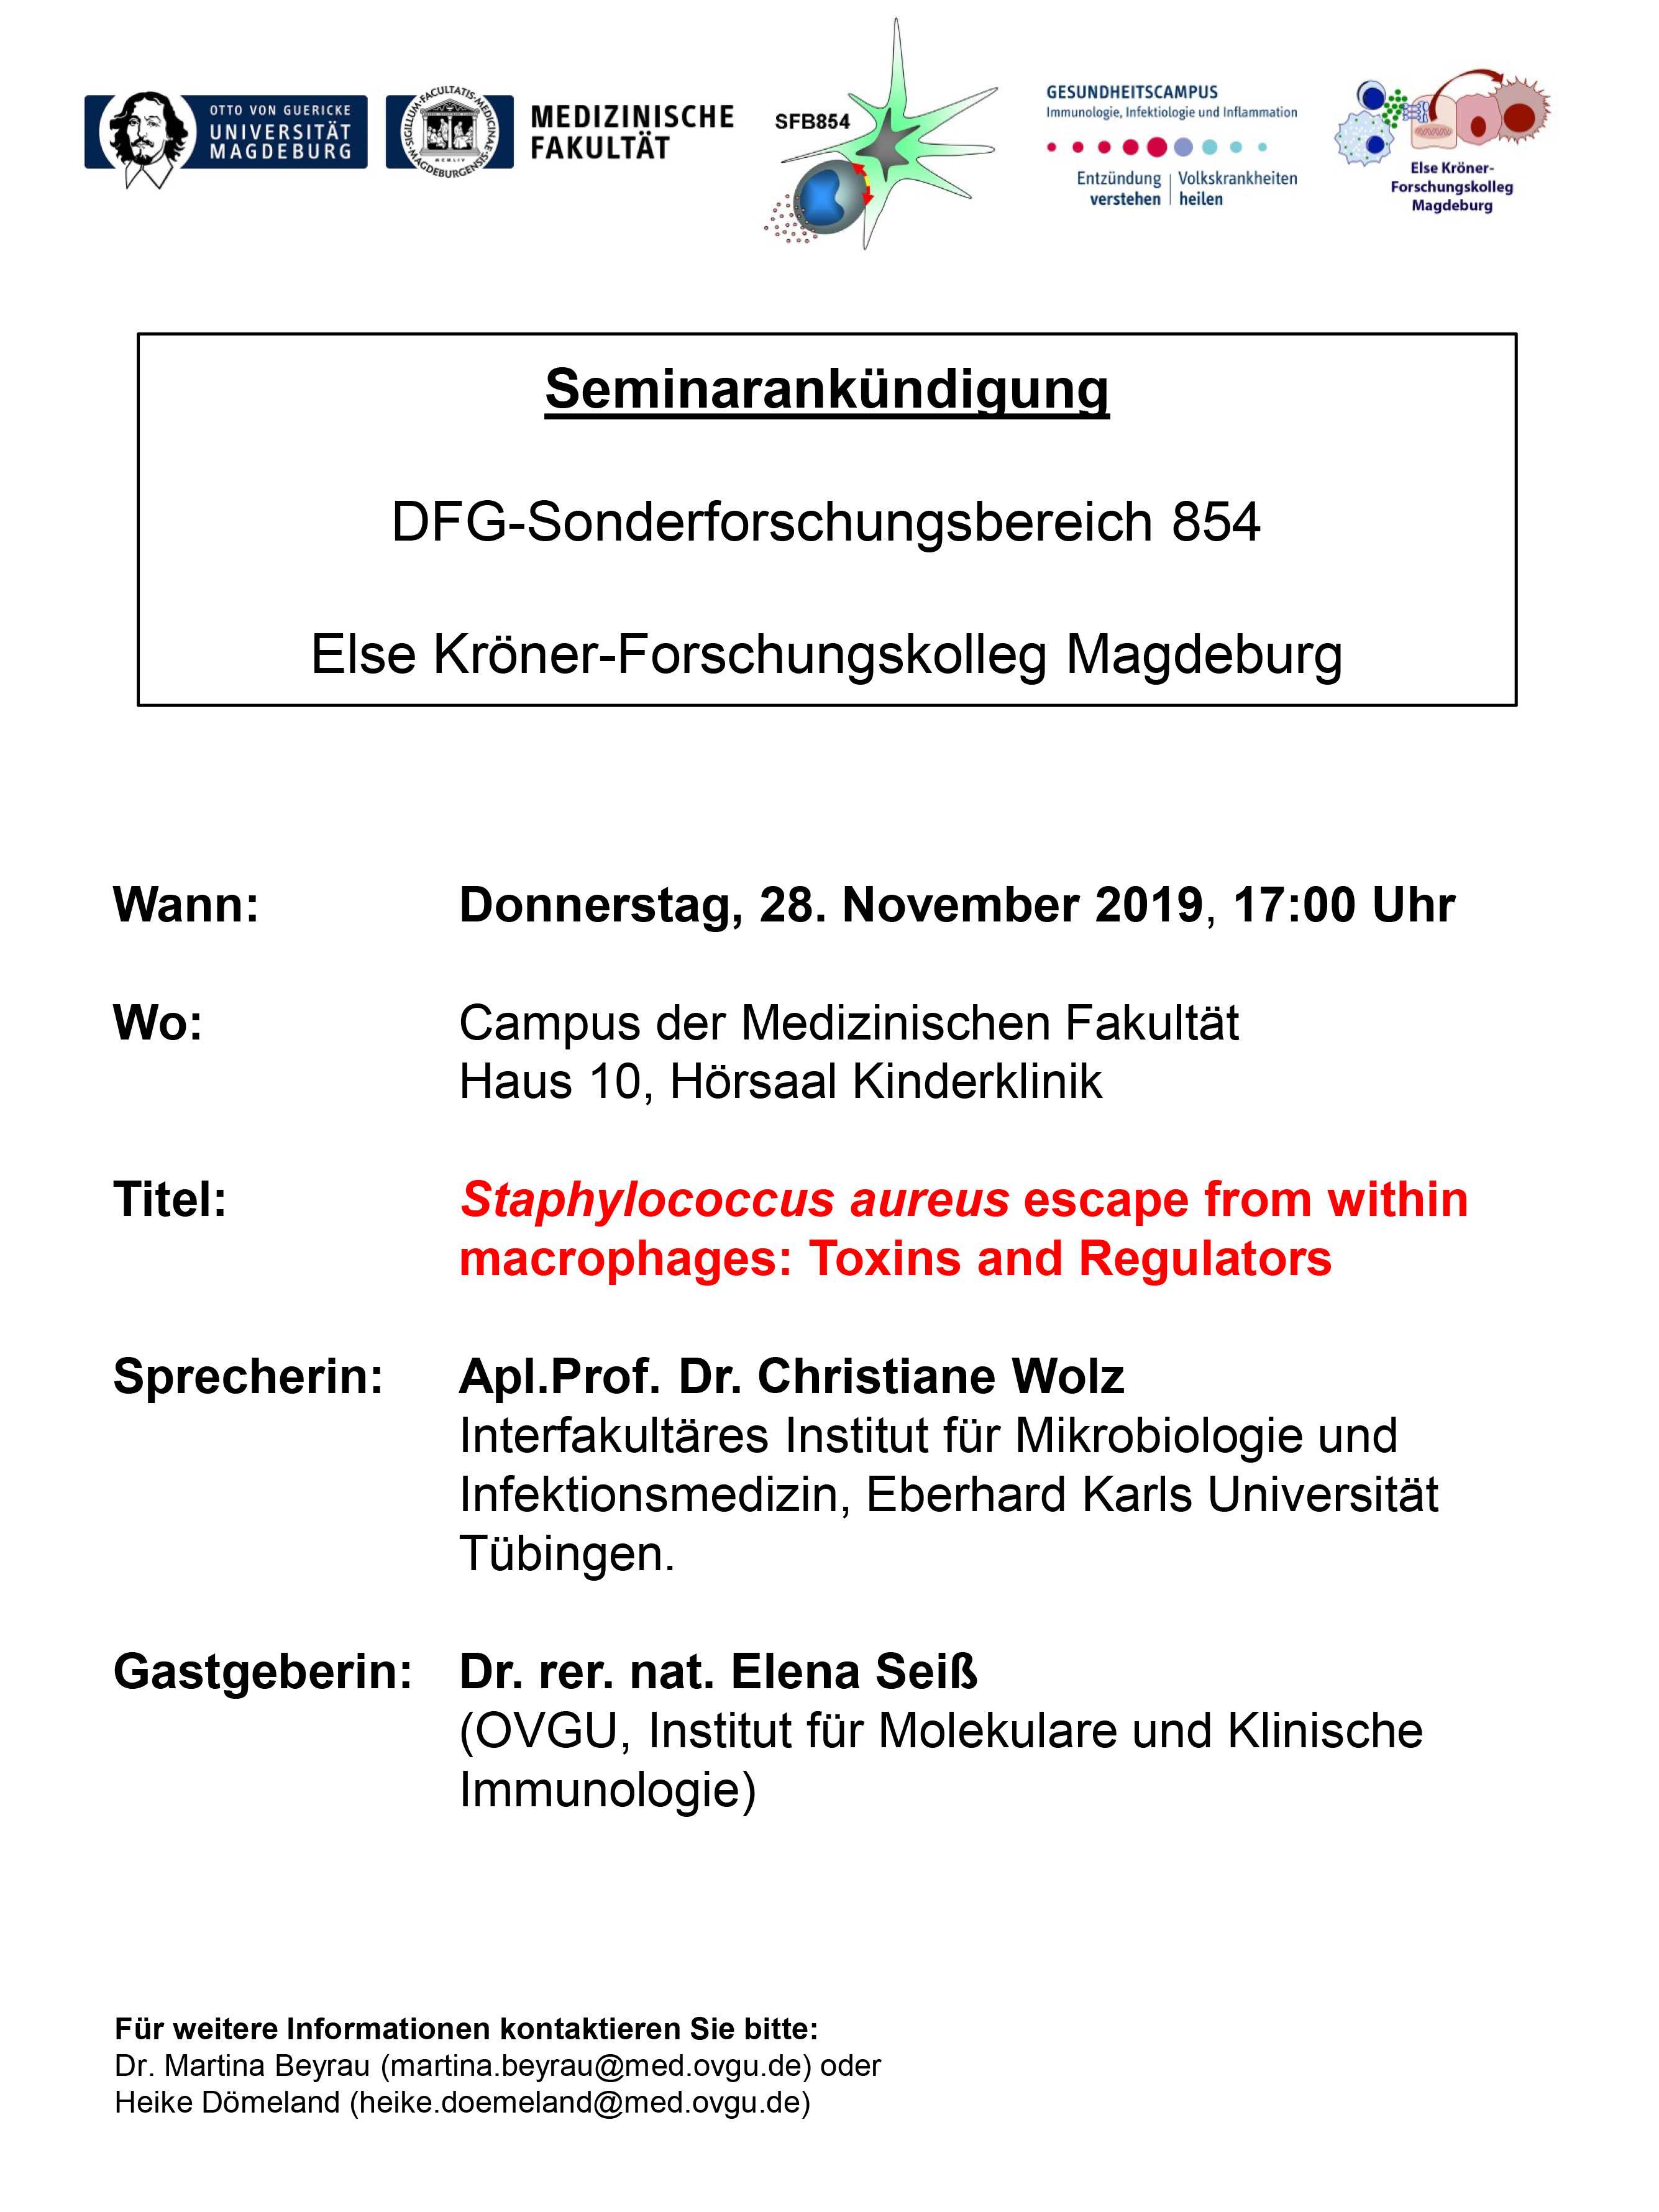 CRC 854 Seminar: Staphylococcus aureus escape from within macrophages: Toxins and Regulators @ Campus of the Medical Fakulty, House 1, Hörsaal Kinderklinik